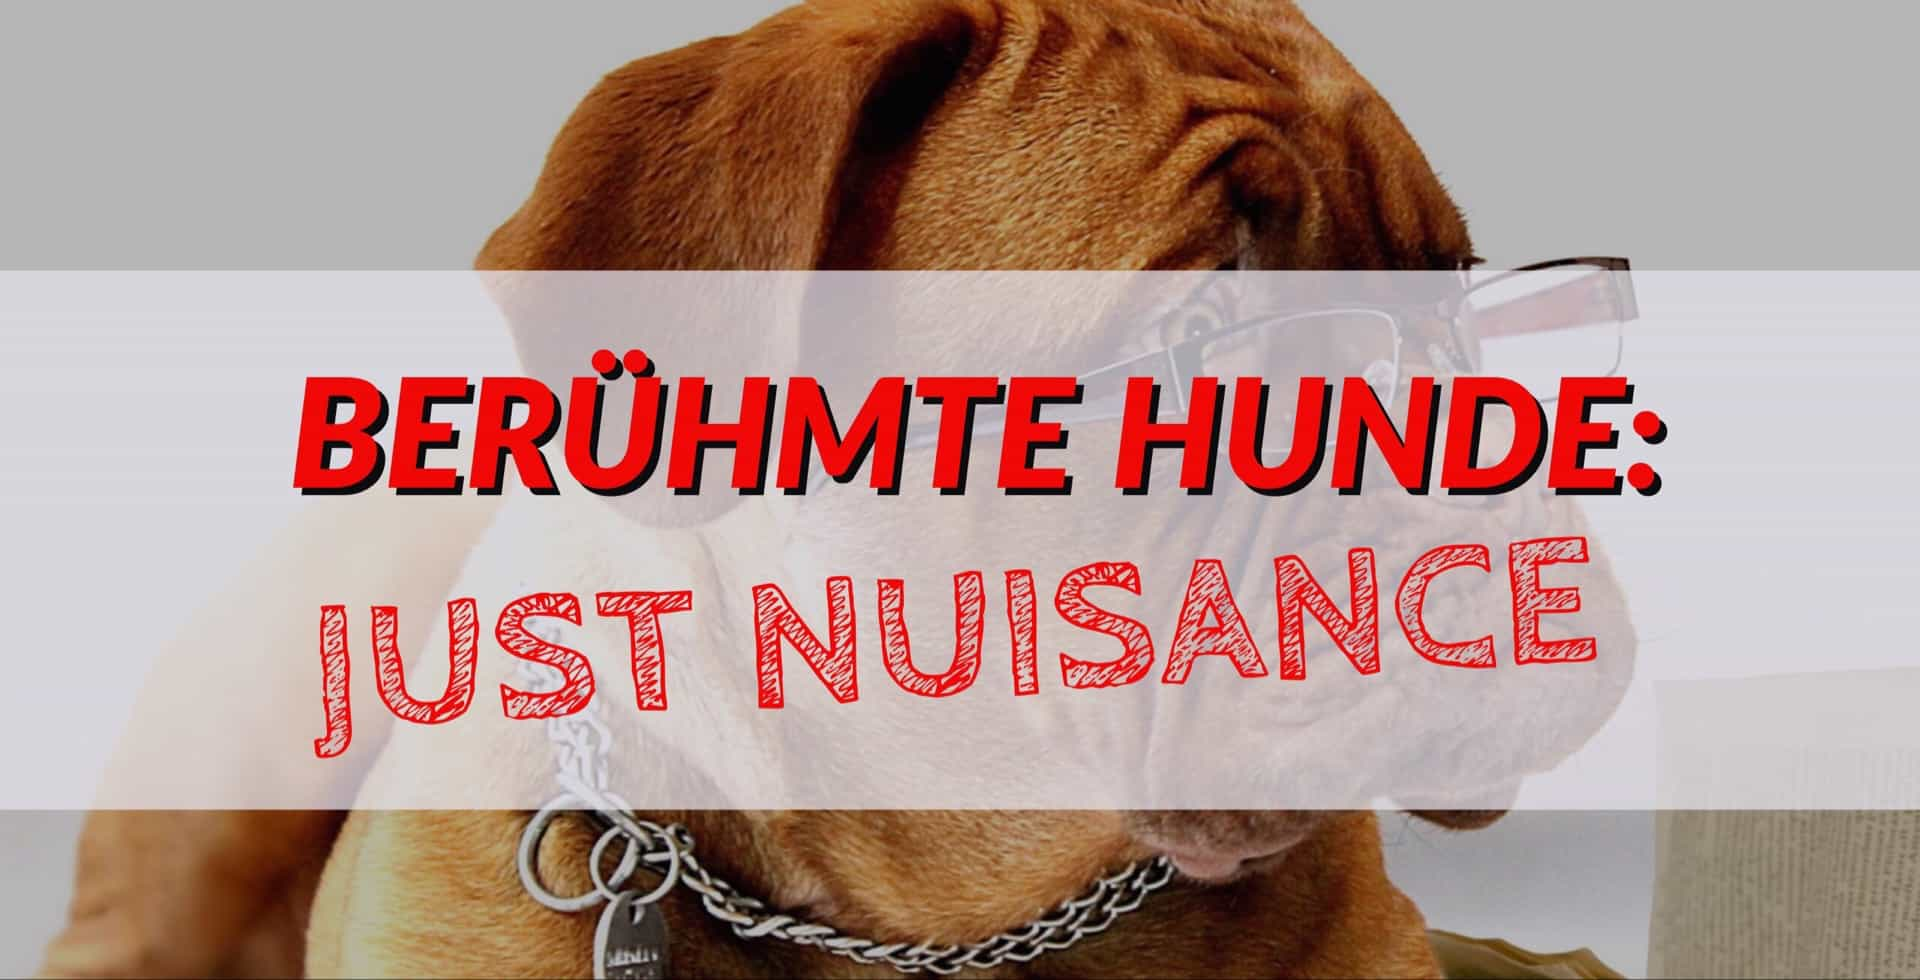 Just Nuisance